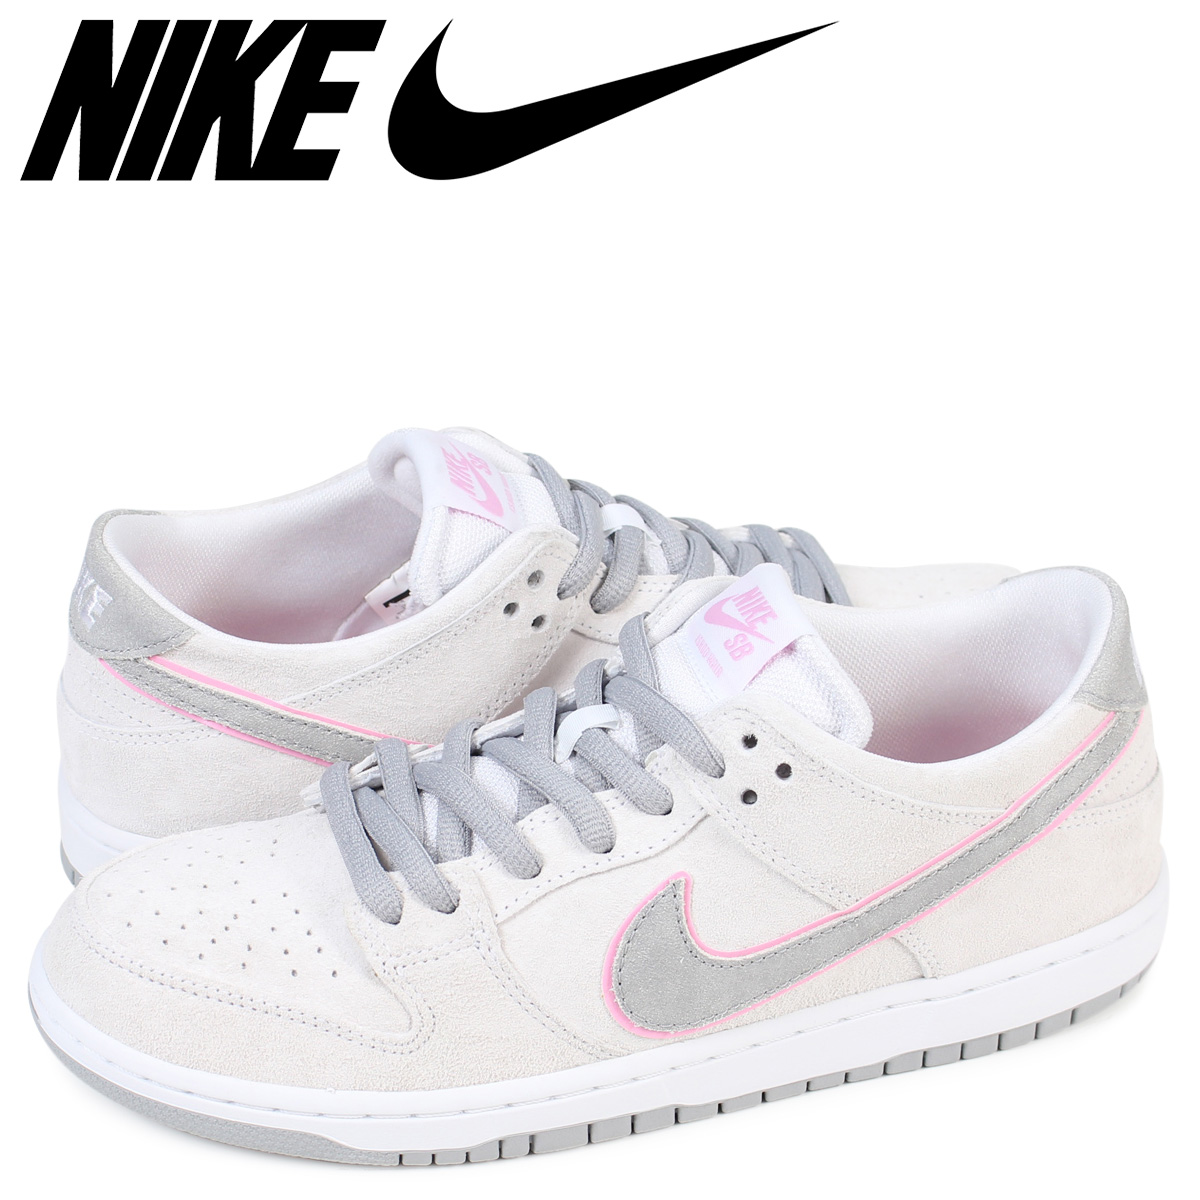 factory price daa79 d0ade NIKE SB ZOOM DUNK LOW PRO IW Nike dunk low sneakers 895,969-160 men's pink  [1711]